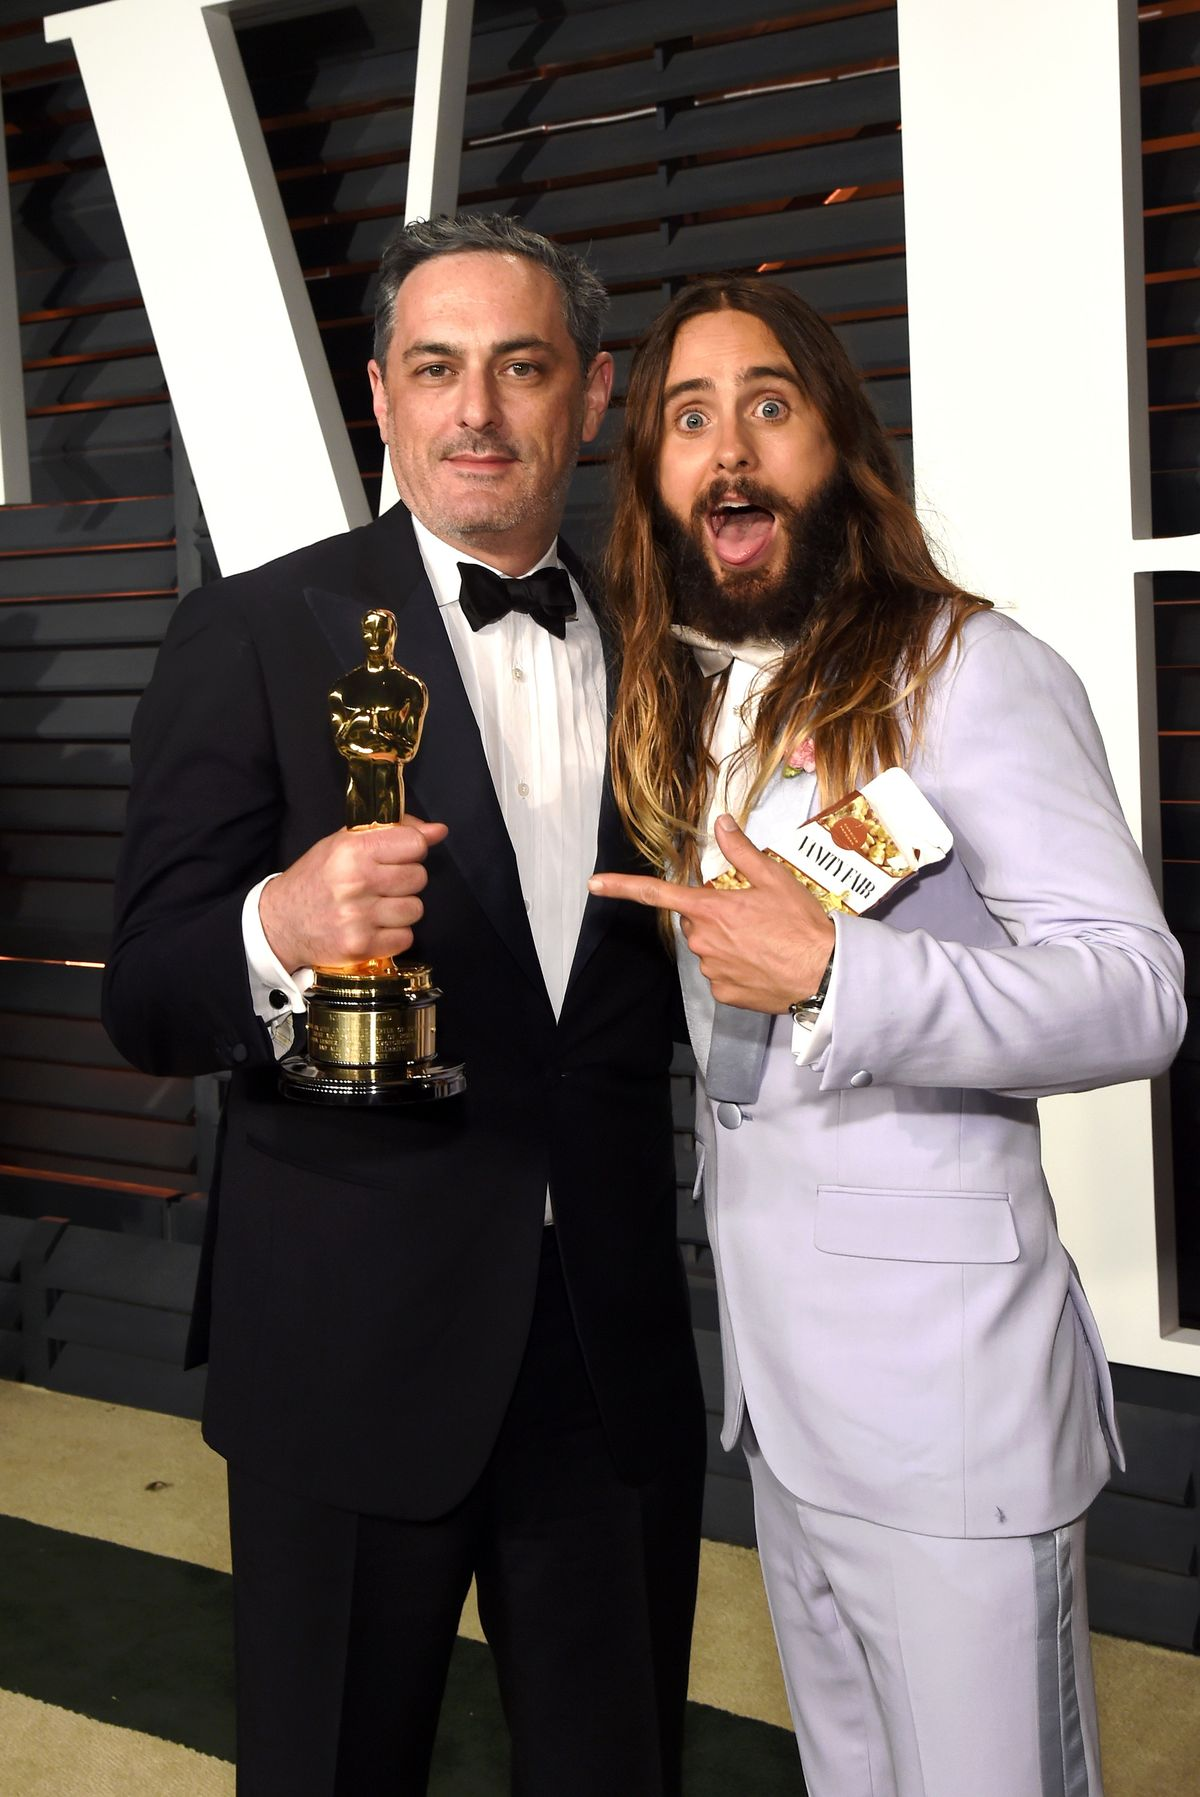 14 Pictures Proving That Jared Leto Had More Fun Than Anyone On Oscar Night Leto5-1424700277.jpg?quality=0